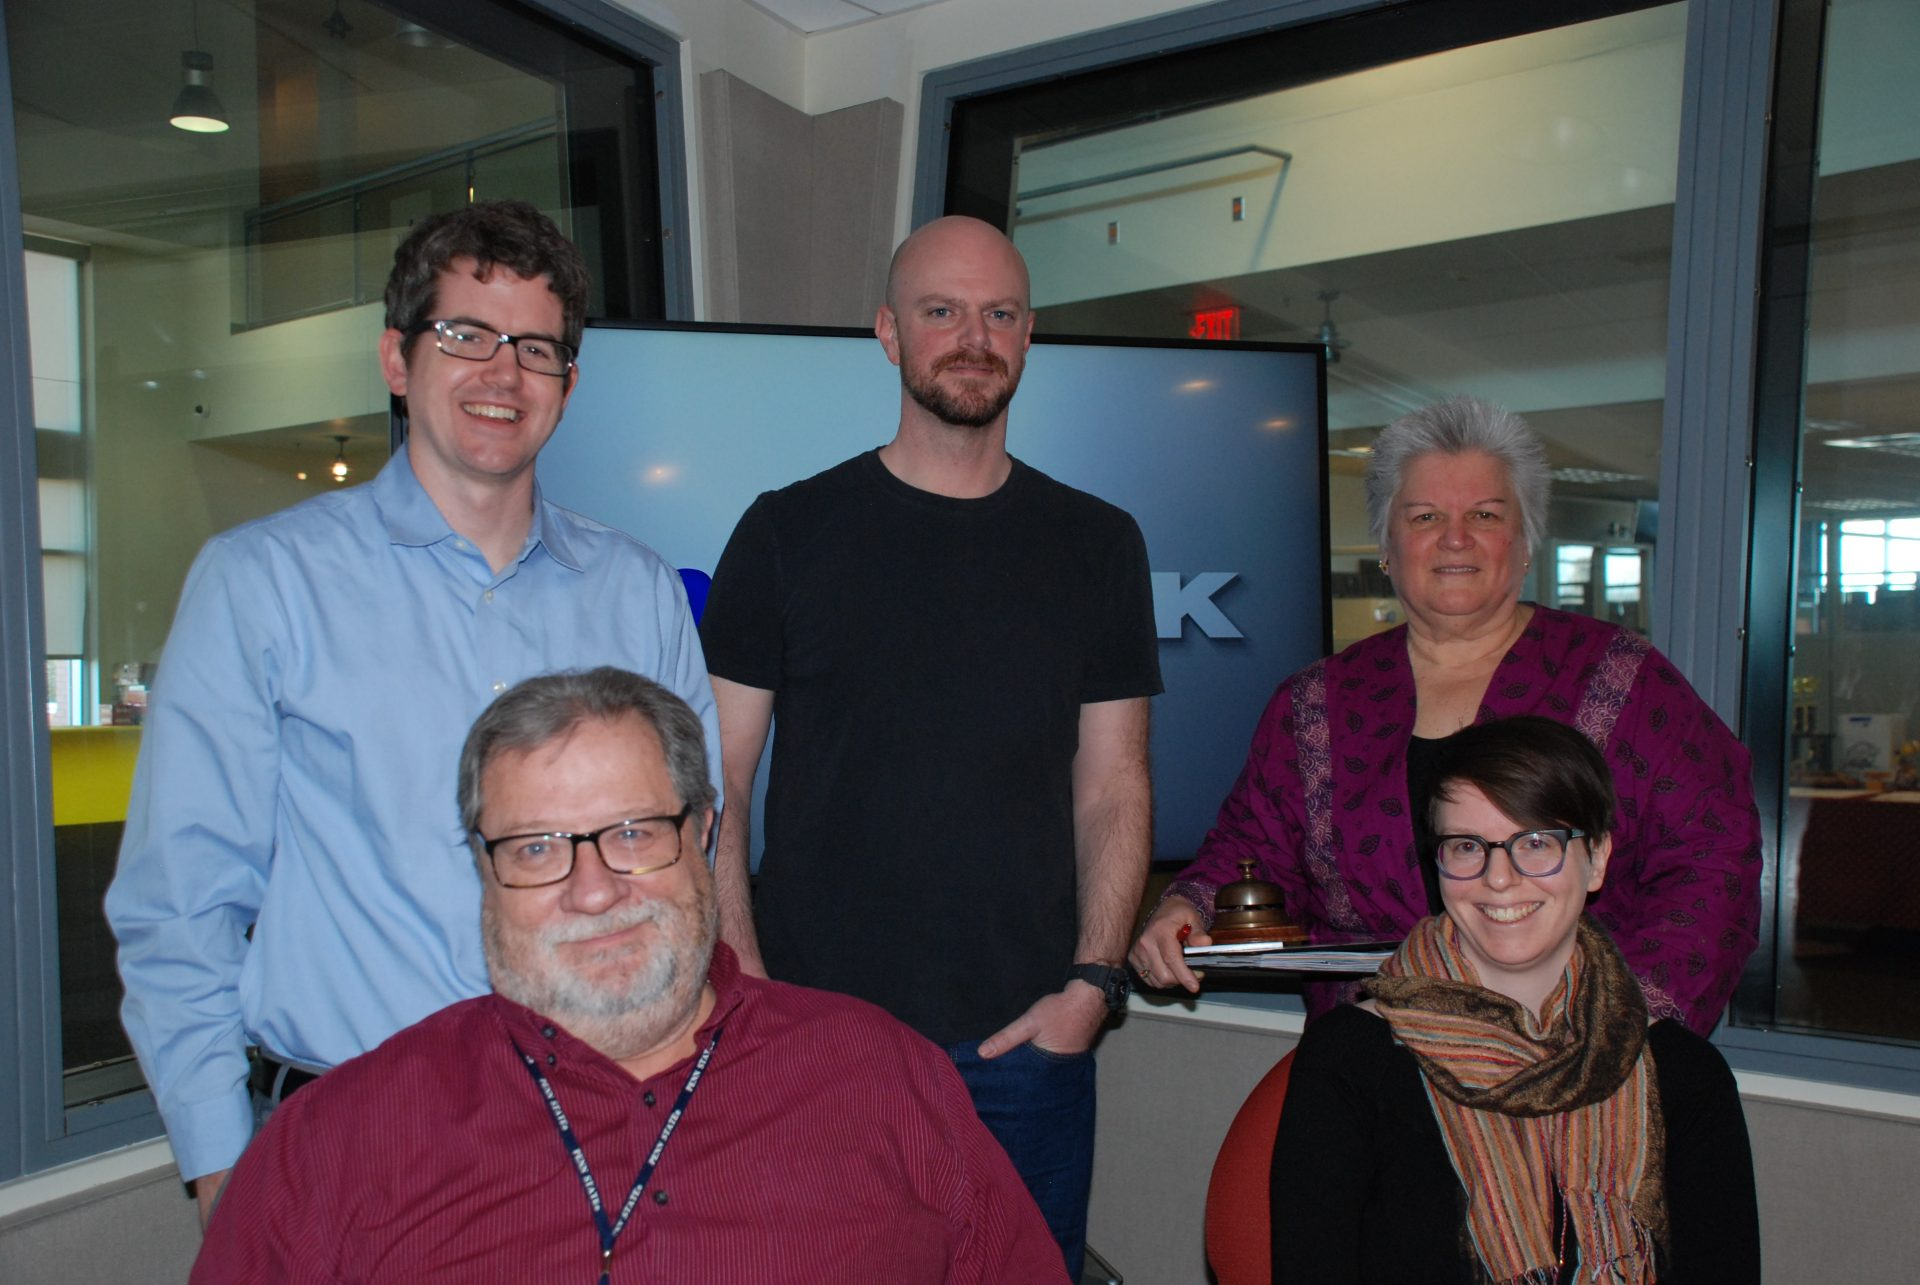 WITF staff appear on Smart Talk on February 21, 2020. Staff members from left to right: Ed Mahon (top left), Joe Ulrich, Ruth Keim, Scott LaMar (bottom left), and Lisa Wardle (bottom right).